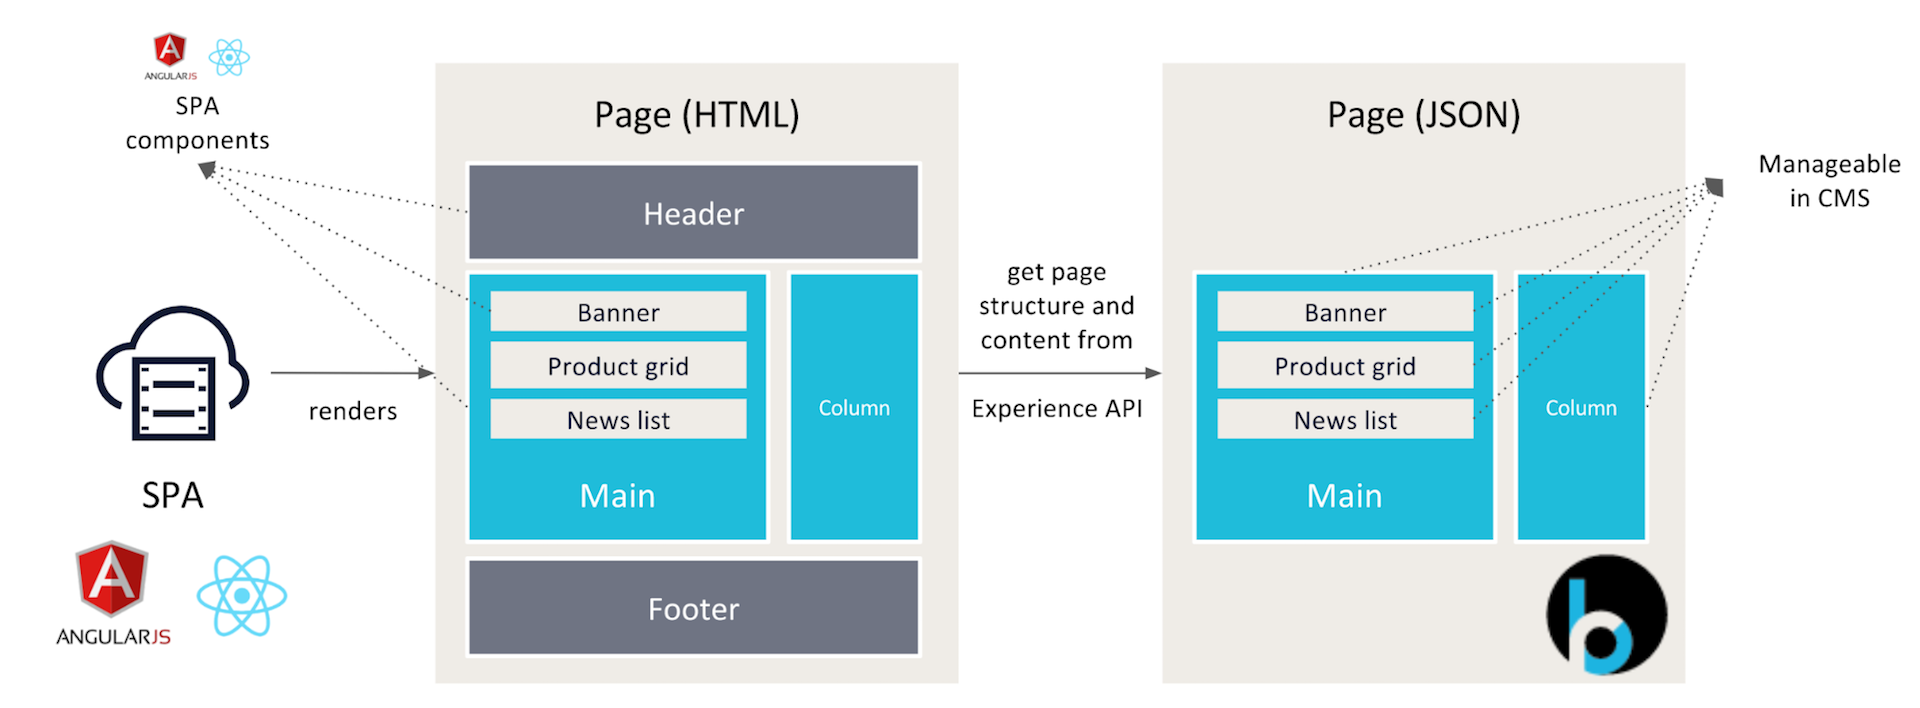 BloomReach Page Model API Architecture